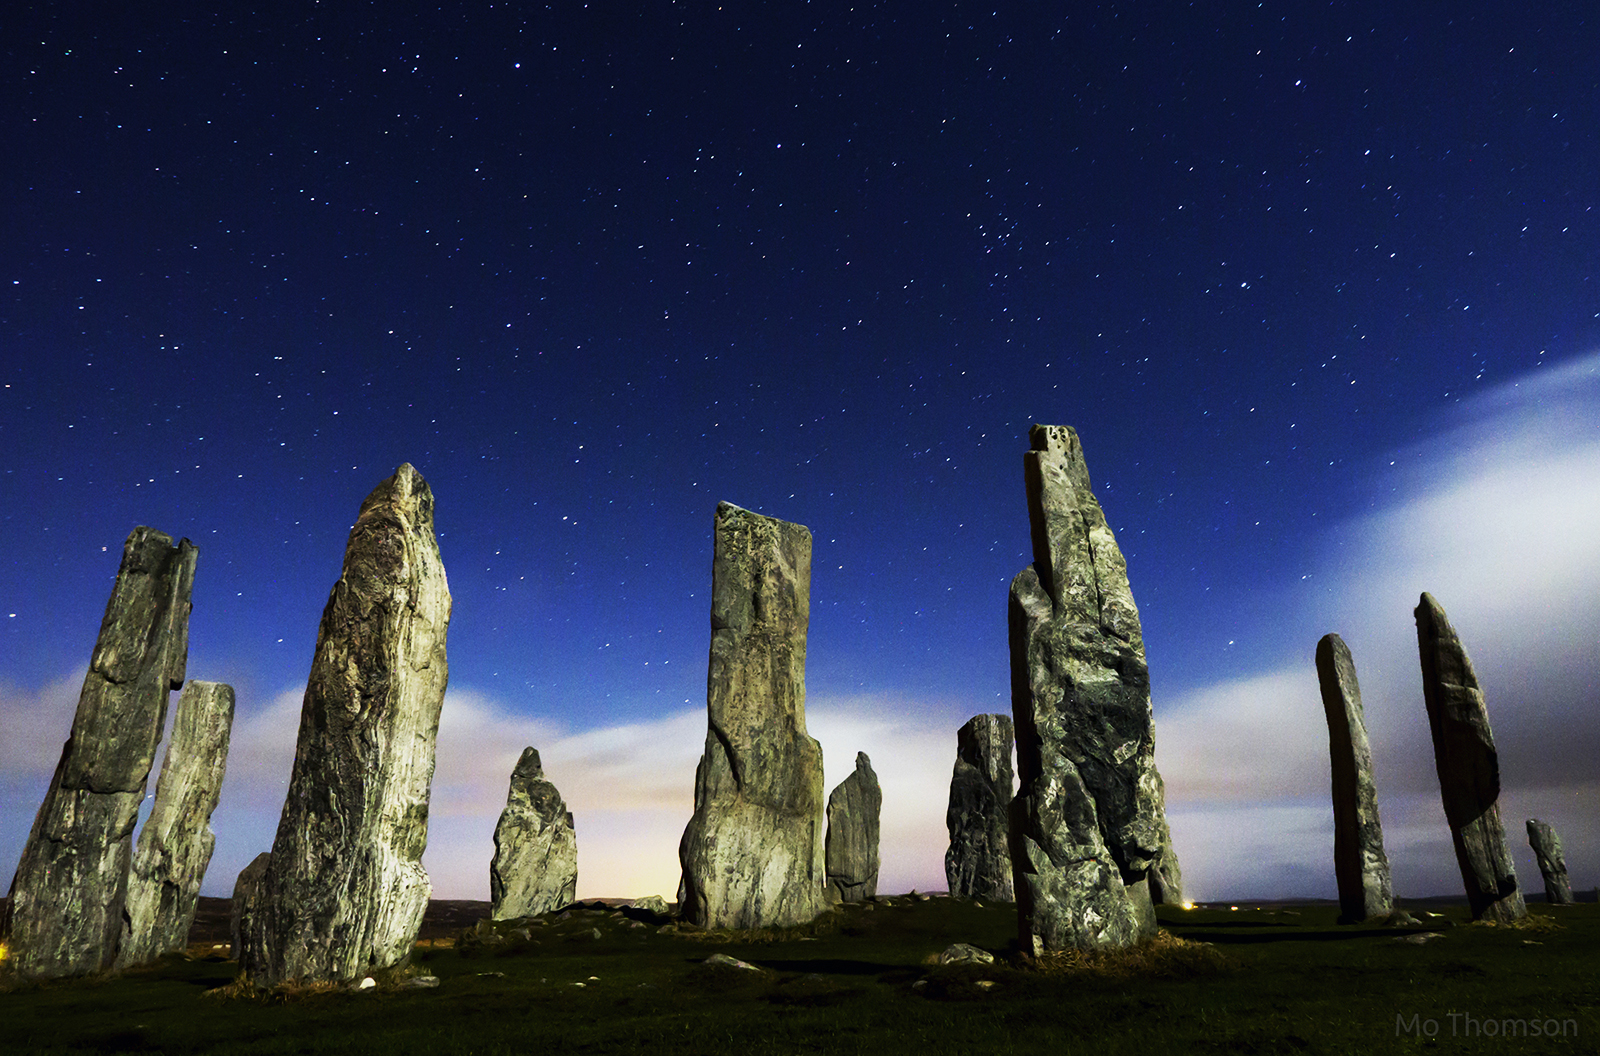 Calanish stones under the moonlight